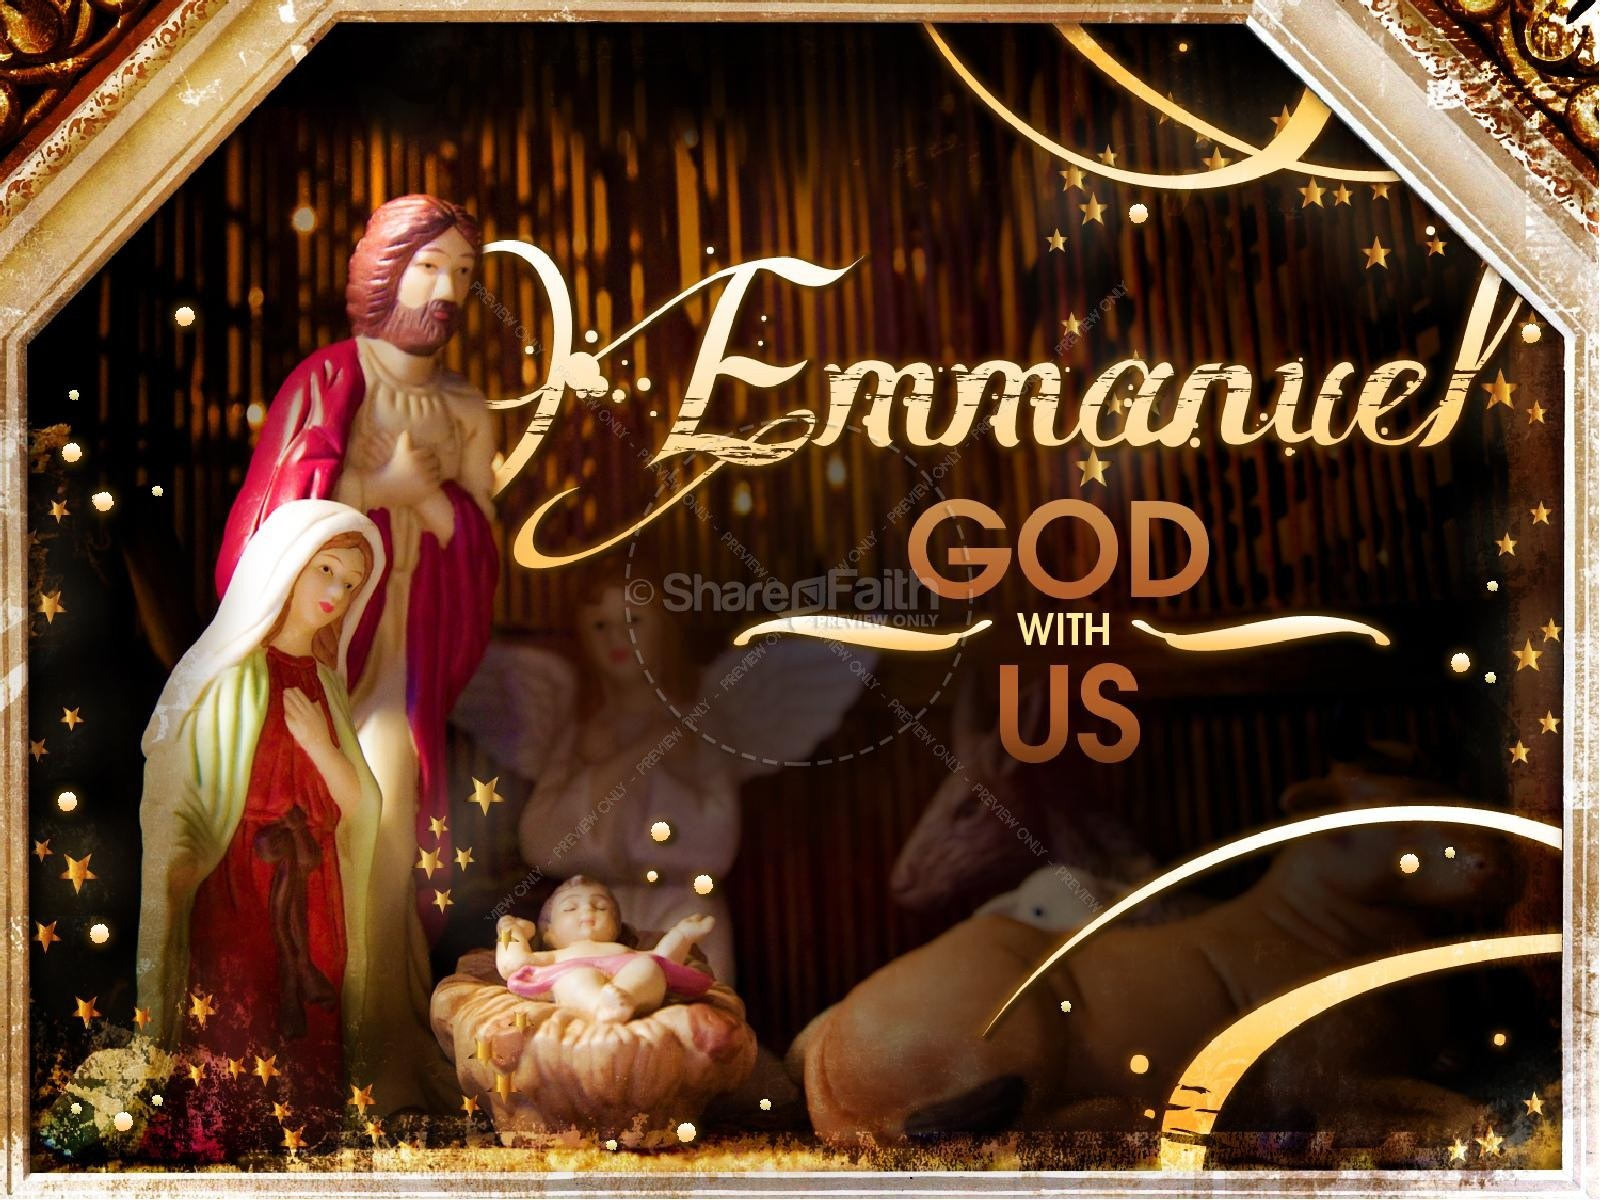 God with us clipart banner freeuse stock Emmanuel god with us clipart » Clipart Portal banner freeuse stock